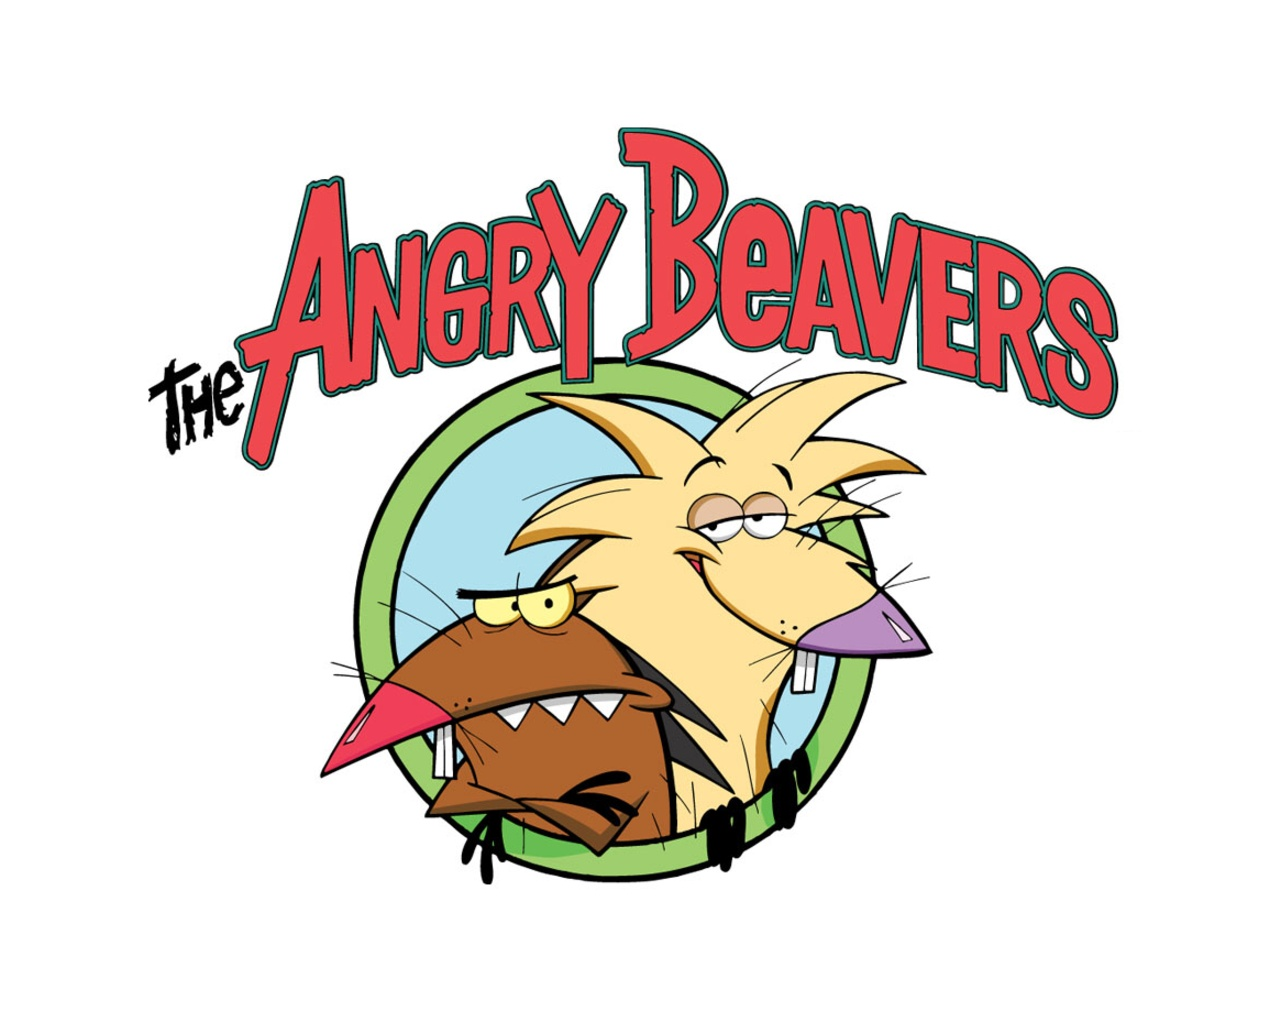 The angry beavers 1